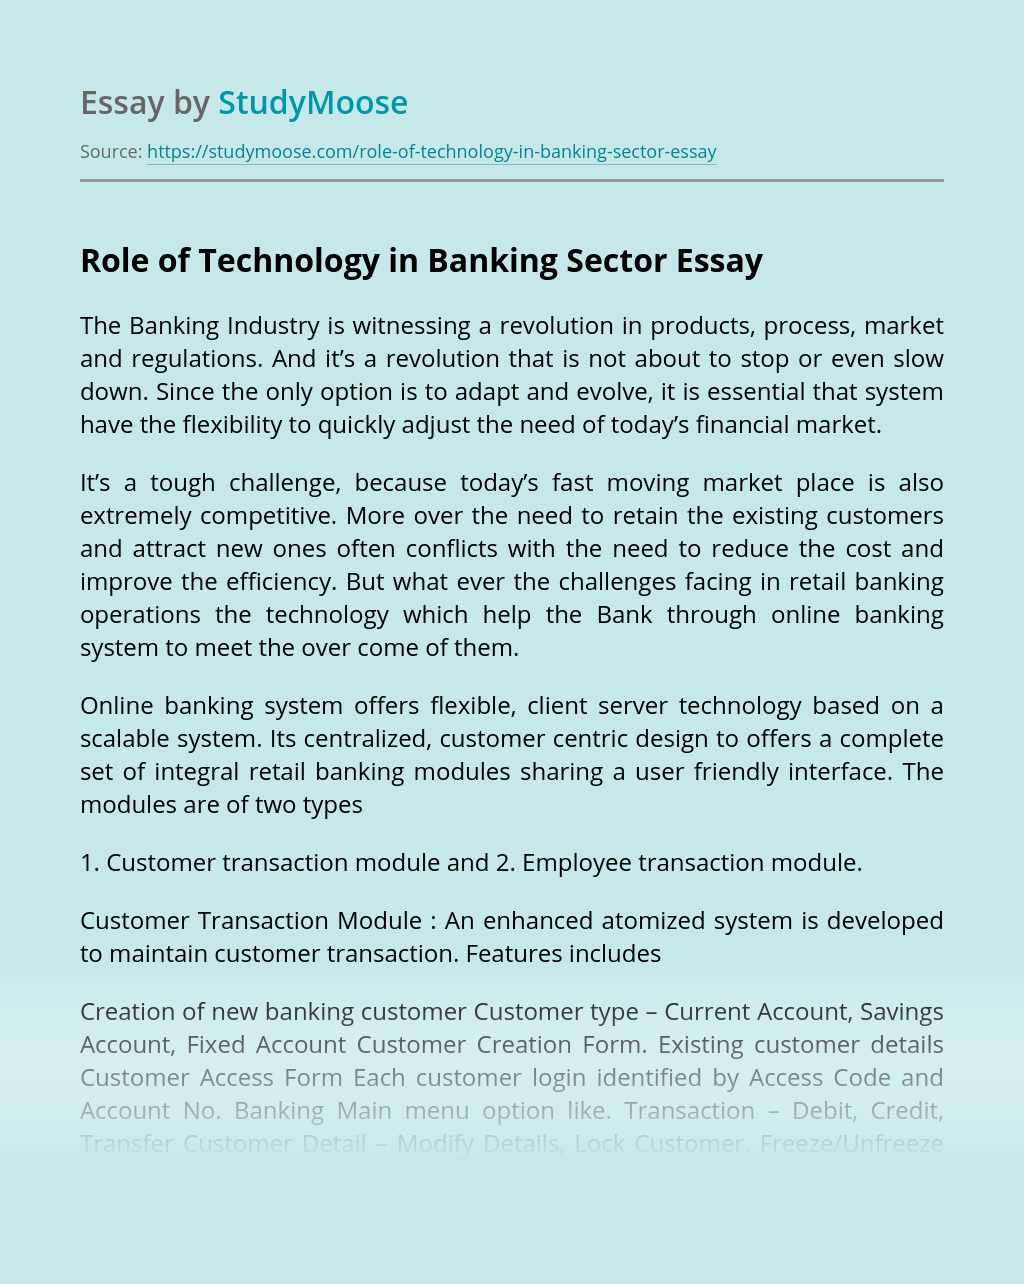 Role of Technology in Banking Sector